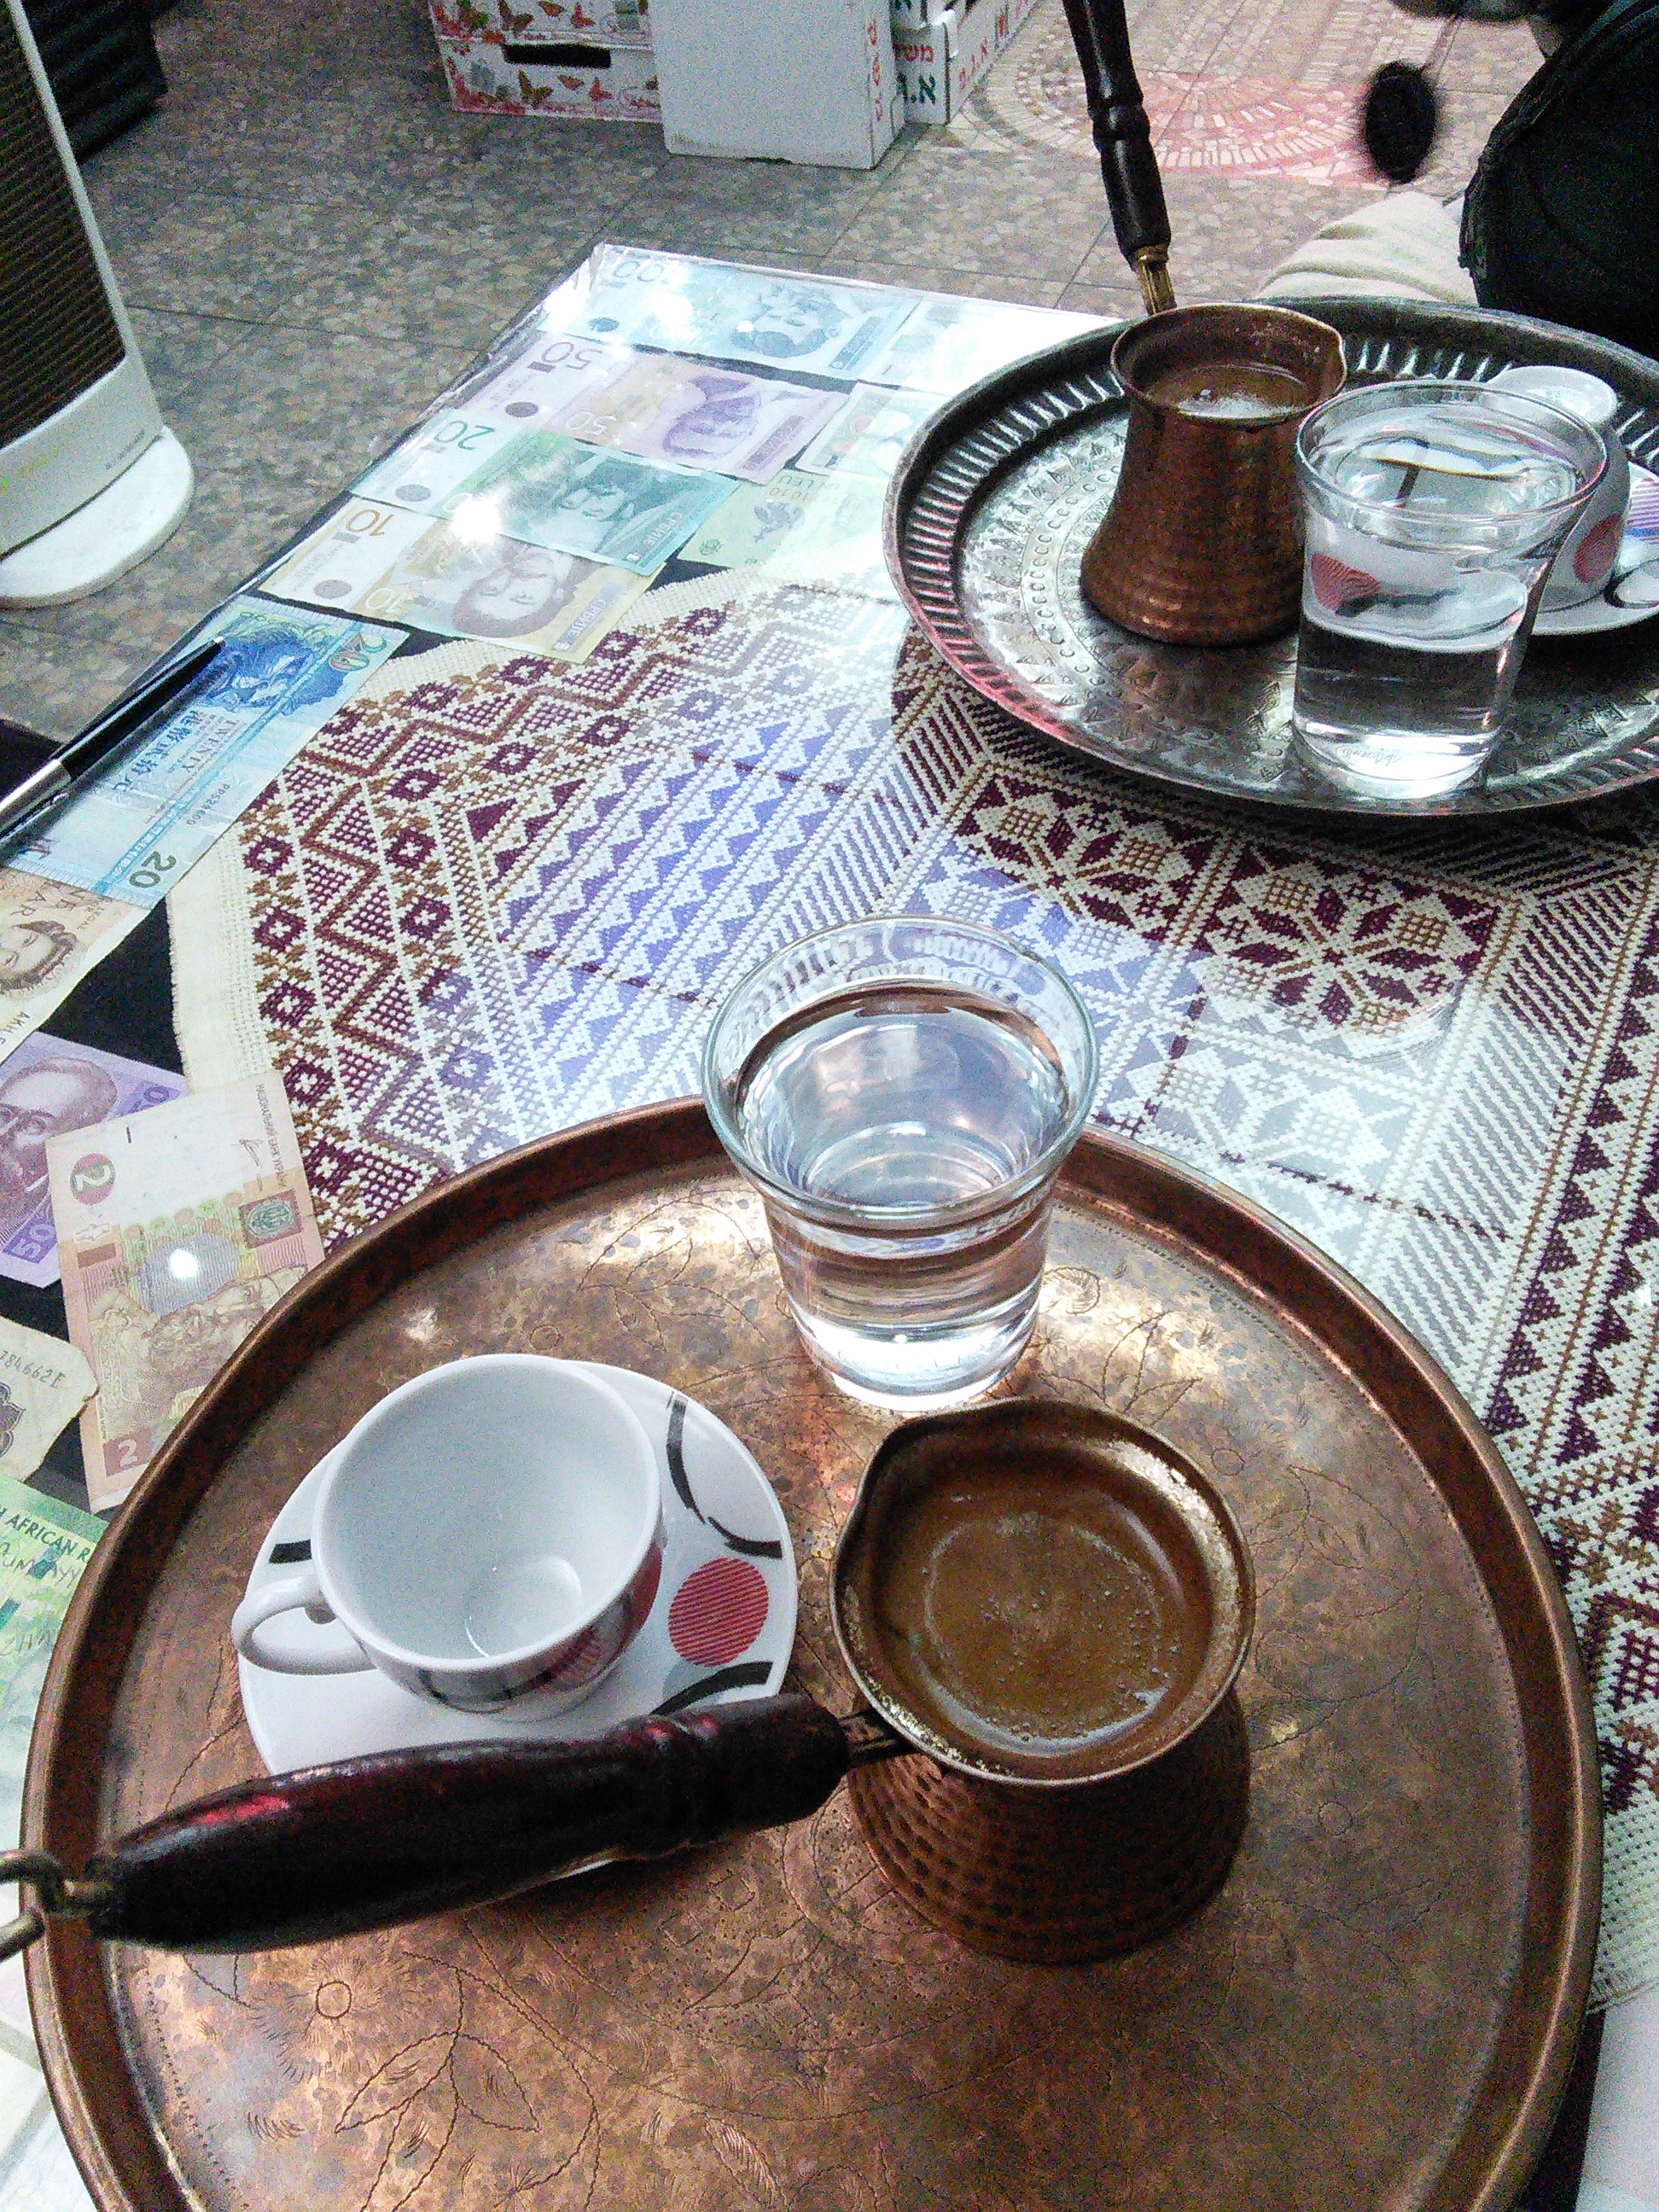 In a coffee shop on the Via Dolorosa